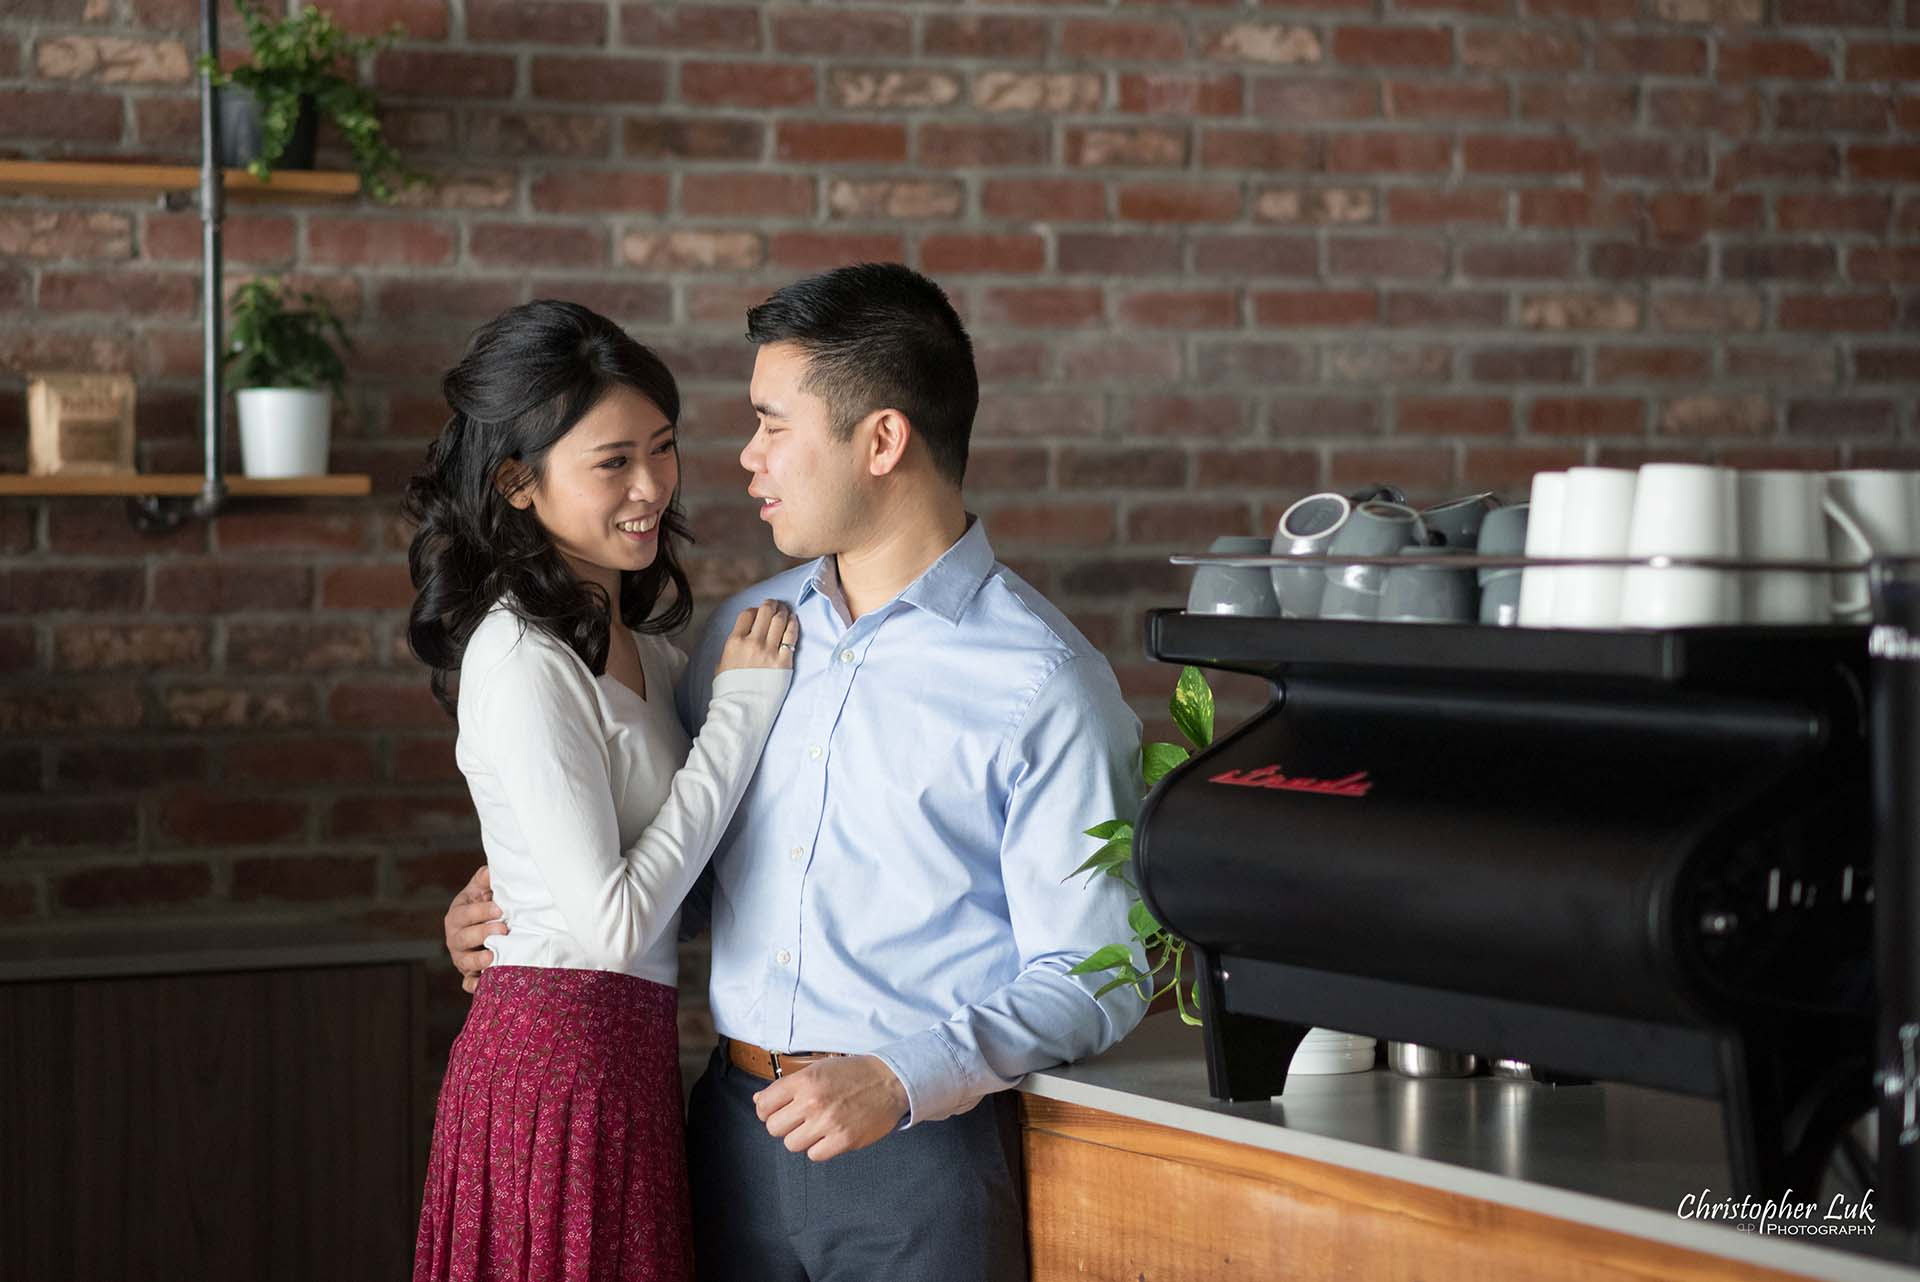 Christopher Luk Toronto Wedding Photographer - Richmond Hill Markham York Region Cafe Coffee Shop Bistro Winter Indoor Engagement PreWedding Rustic Business Interior Design Real Estate La Marzocco Strada Espresso Machine Natural Candid Photojournalistic Bride Groom Counter Landscape